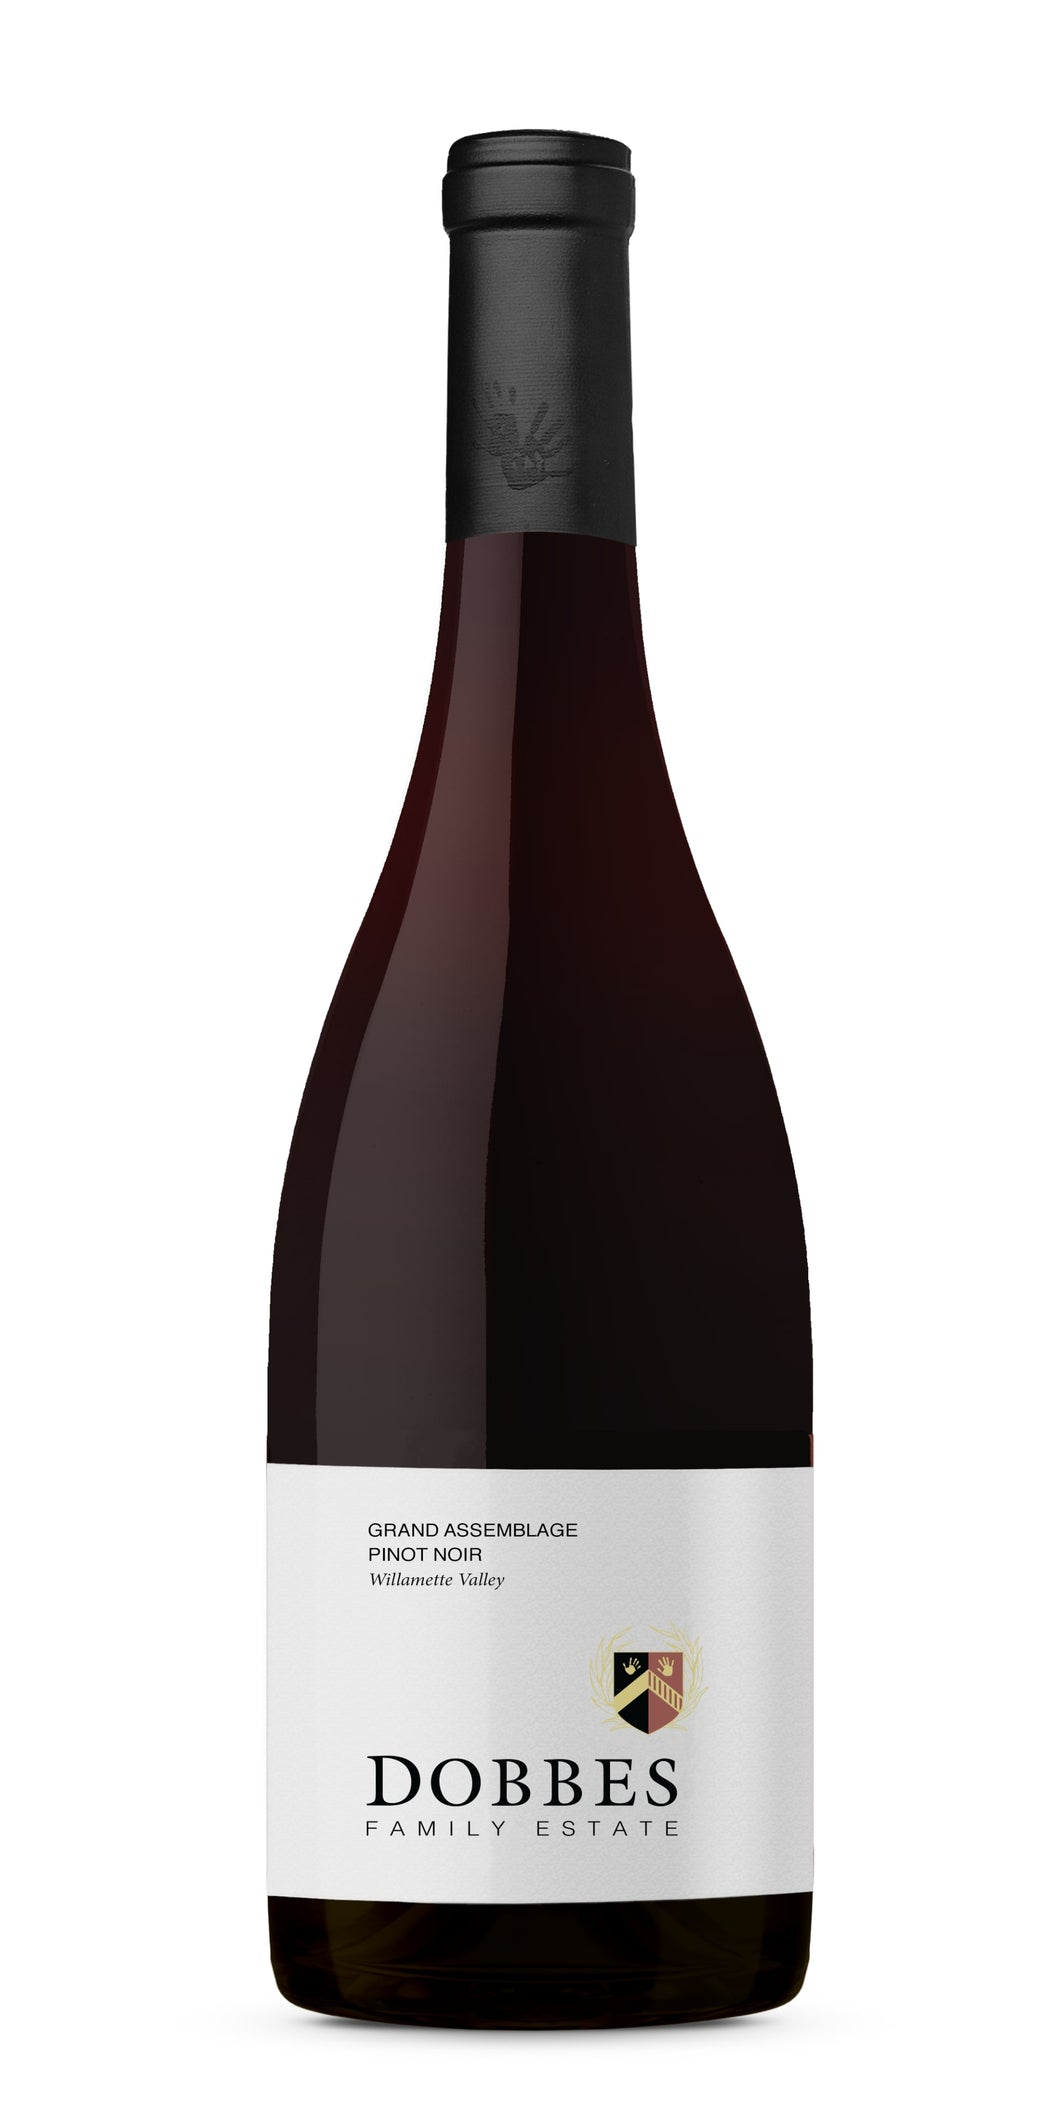 Dobbes Family Estate Pinot Noir Grand Assemblage 2018